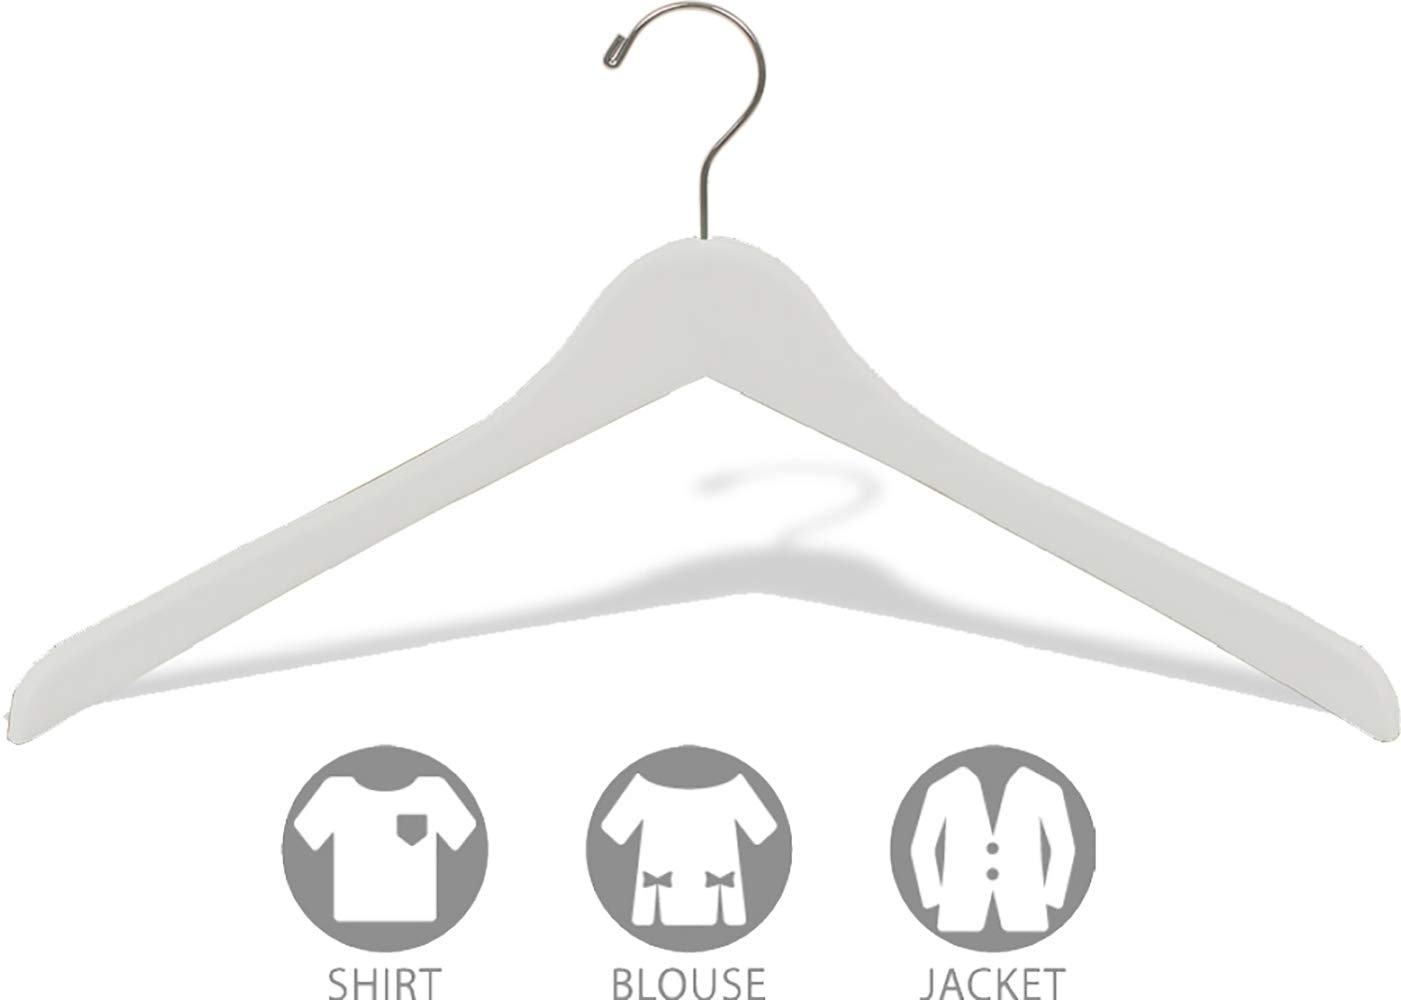 by The Great American Hanger Company XL407RMN-025 White Concave Wooden Top Hanger Thick Curved Coat Hangers with Matte Nickel Swivel Hook for Jackets or Fine Shirts Set of 25